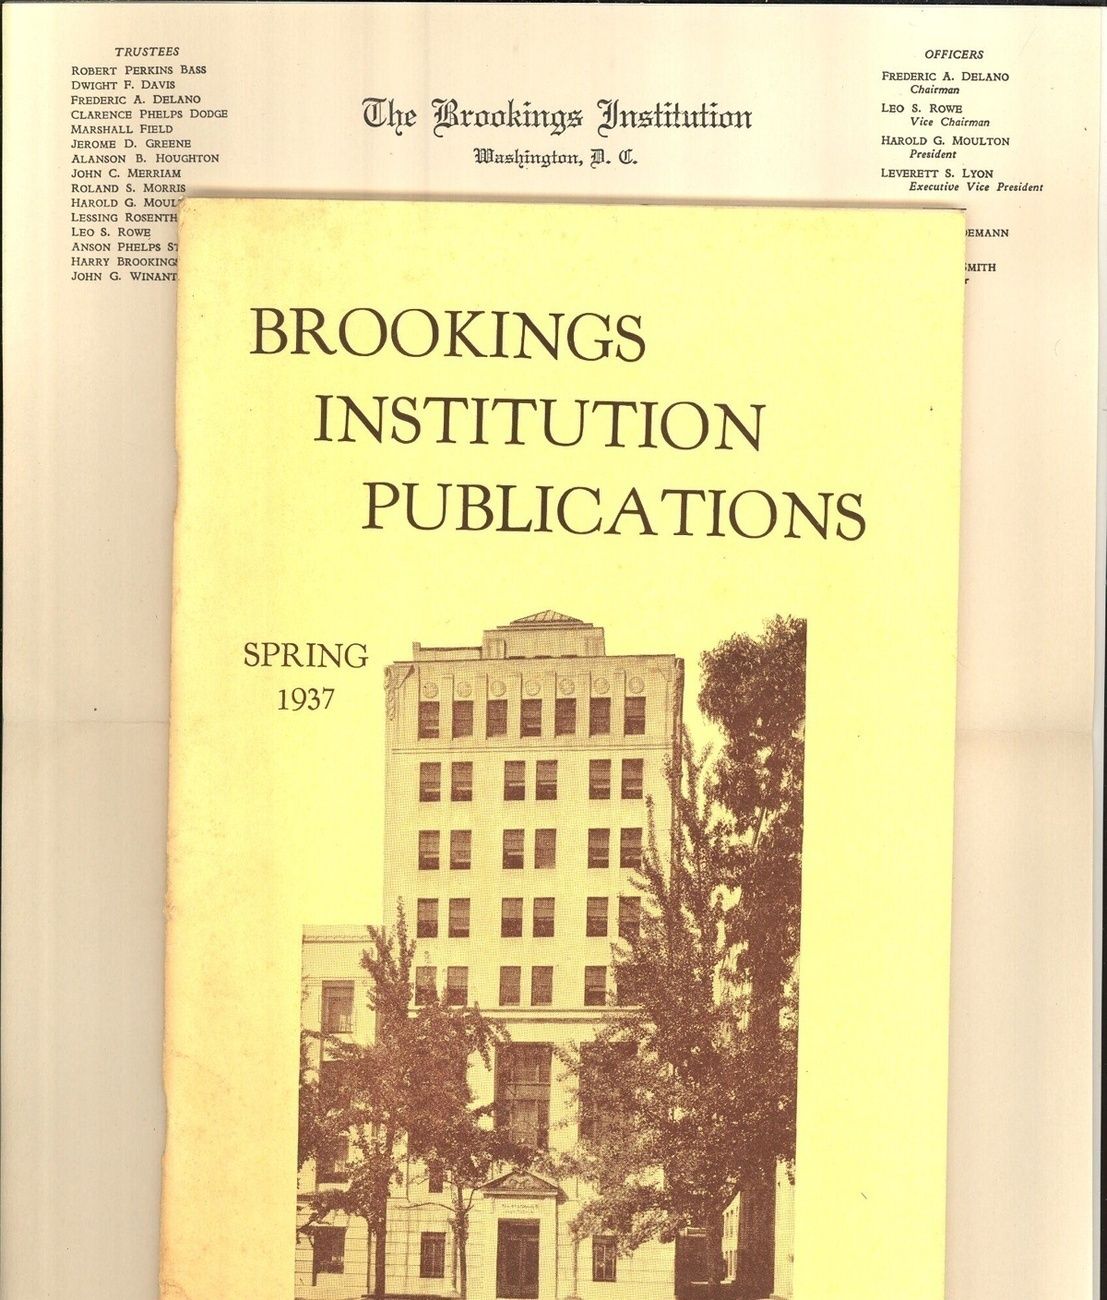 Primary image for Brookings Institution catalog 1937 letterhead vintage humanitarian ephemera